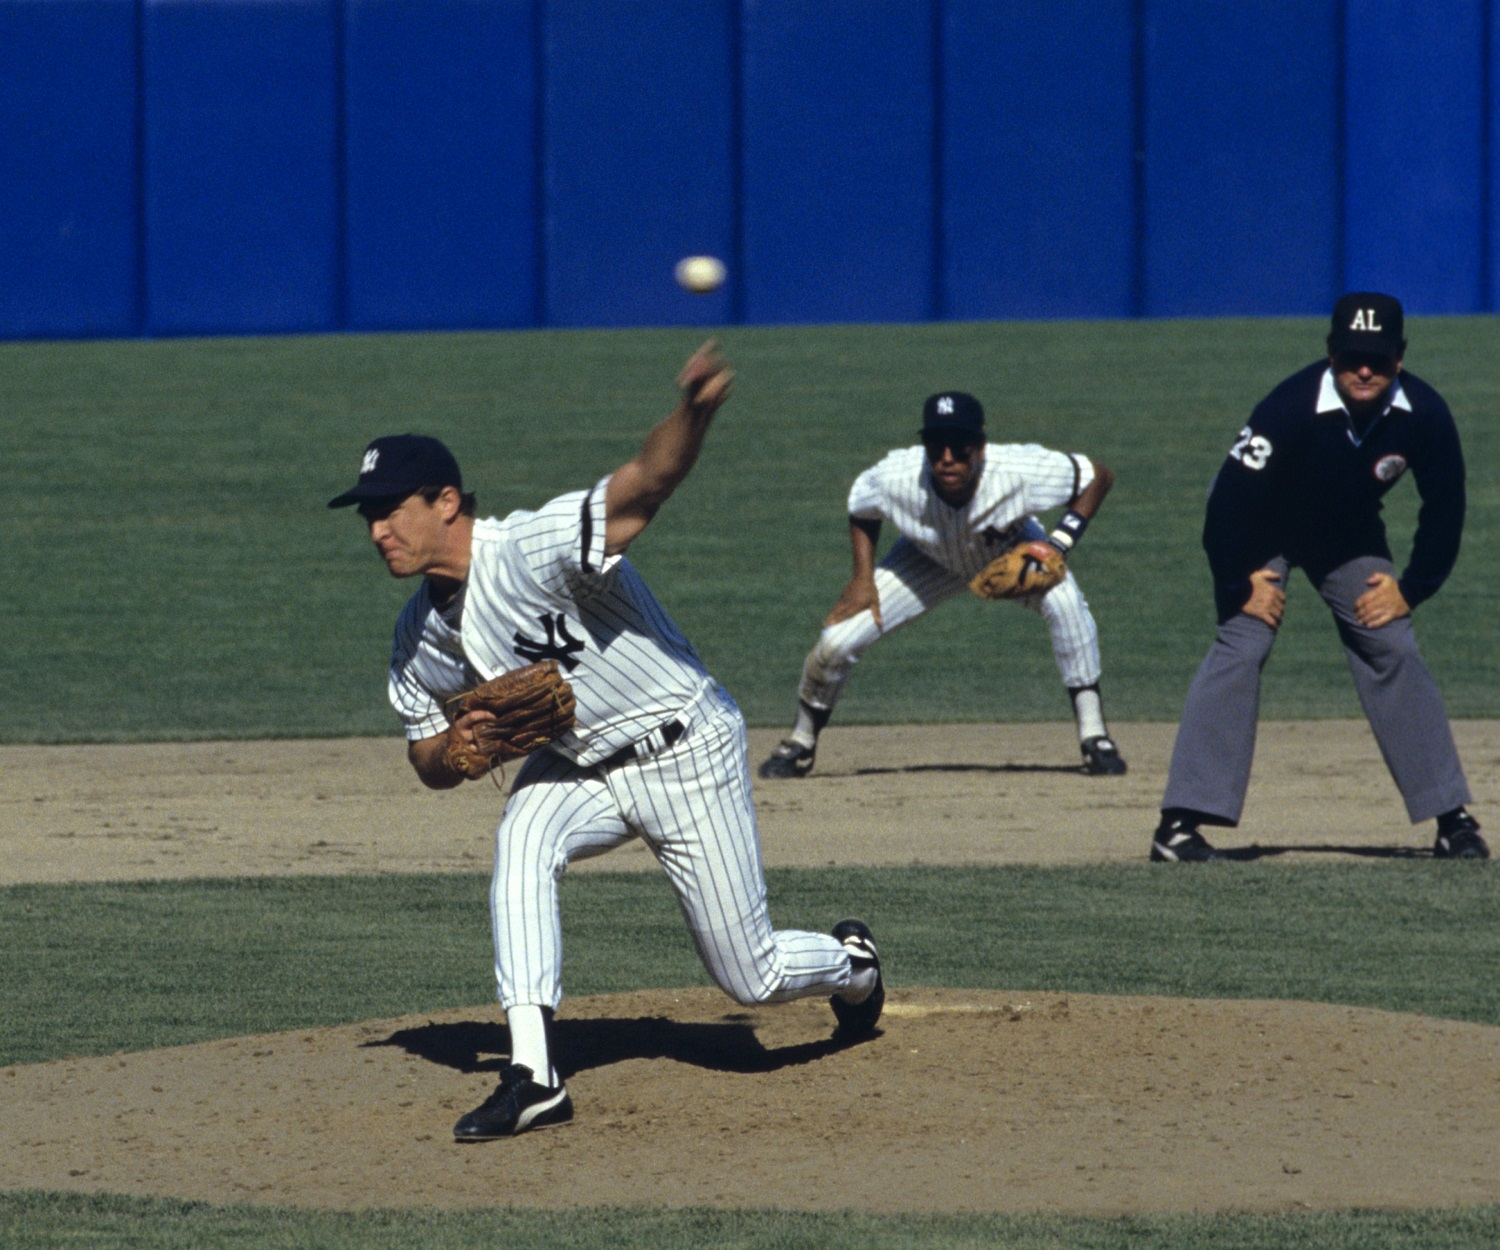 Dave Righetti's 1983 no-hitter was his last career shutout. He went o to become one of the game's top closers.